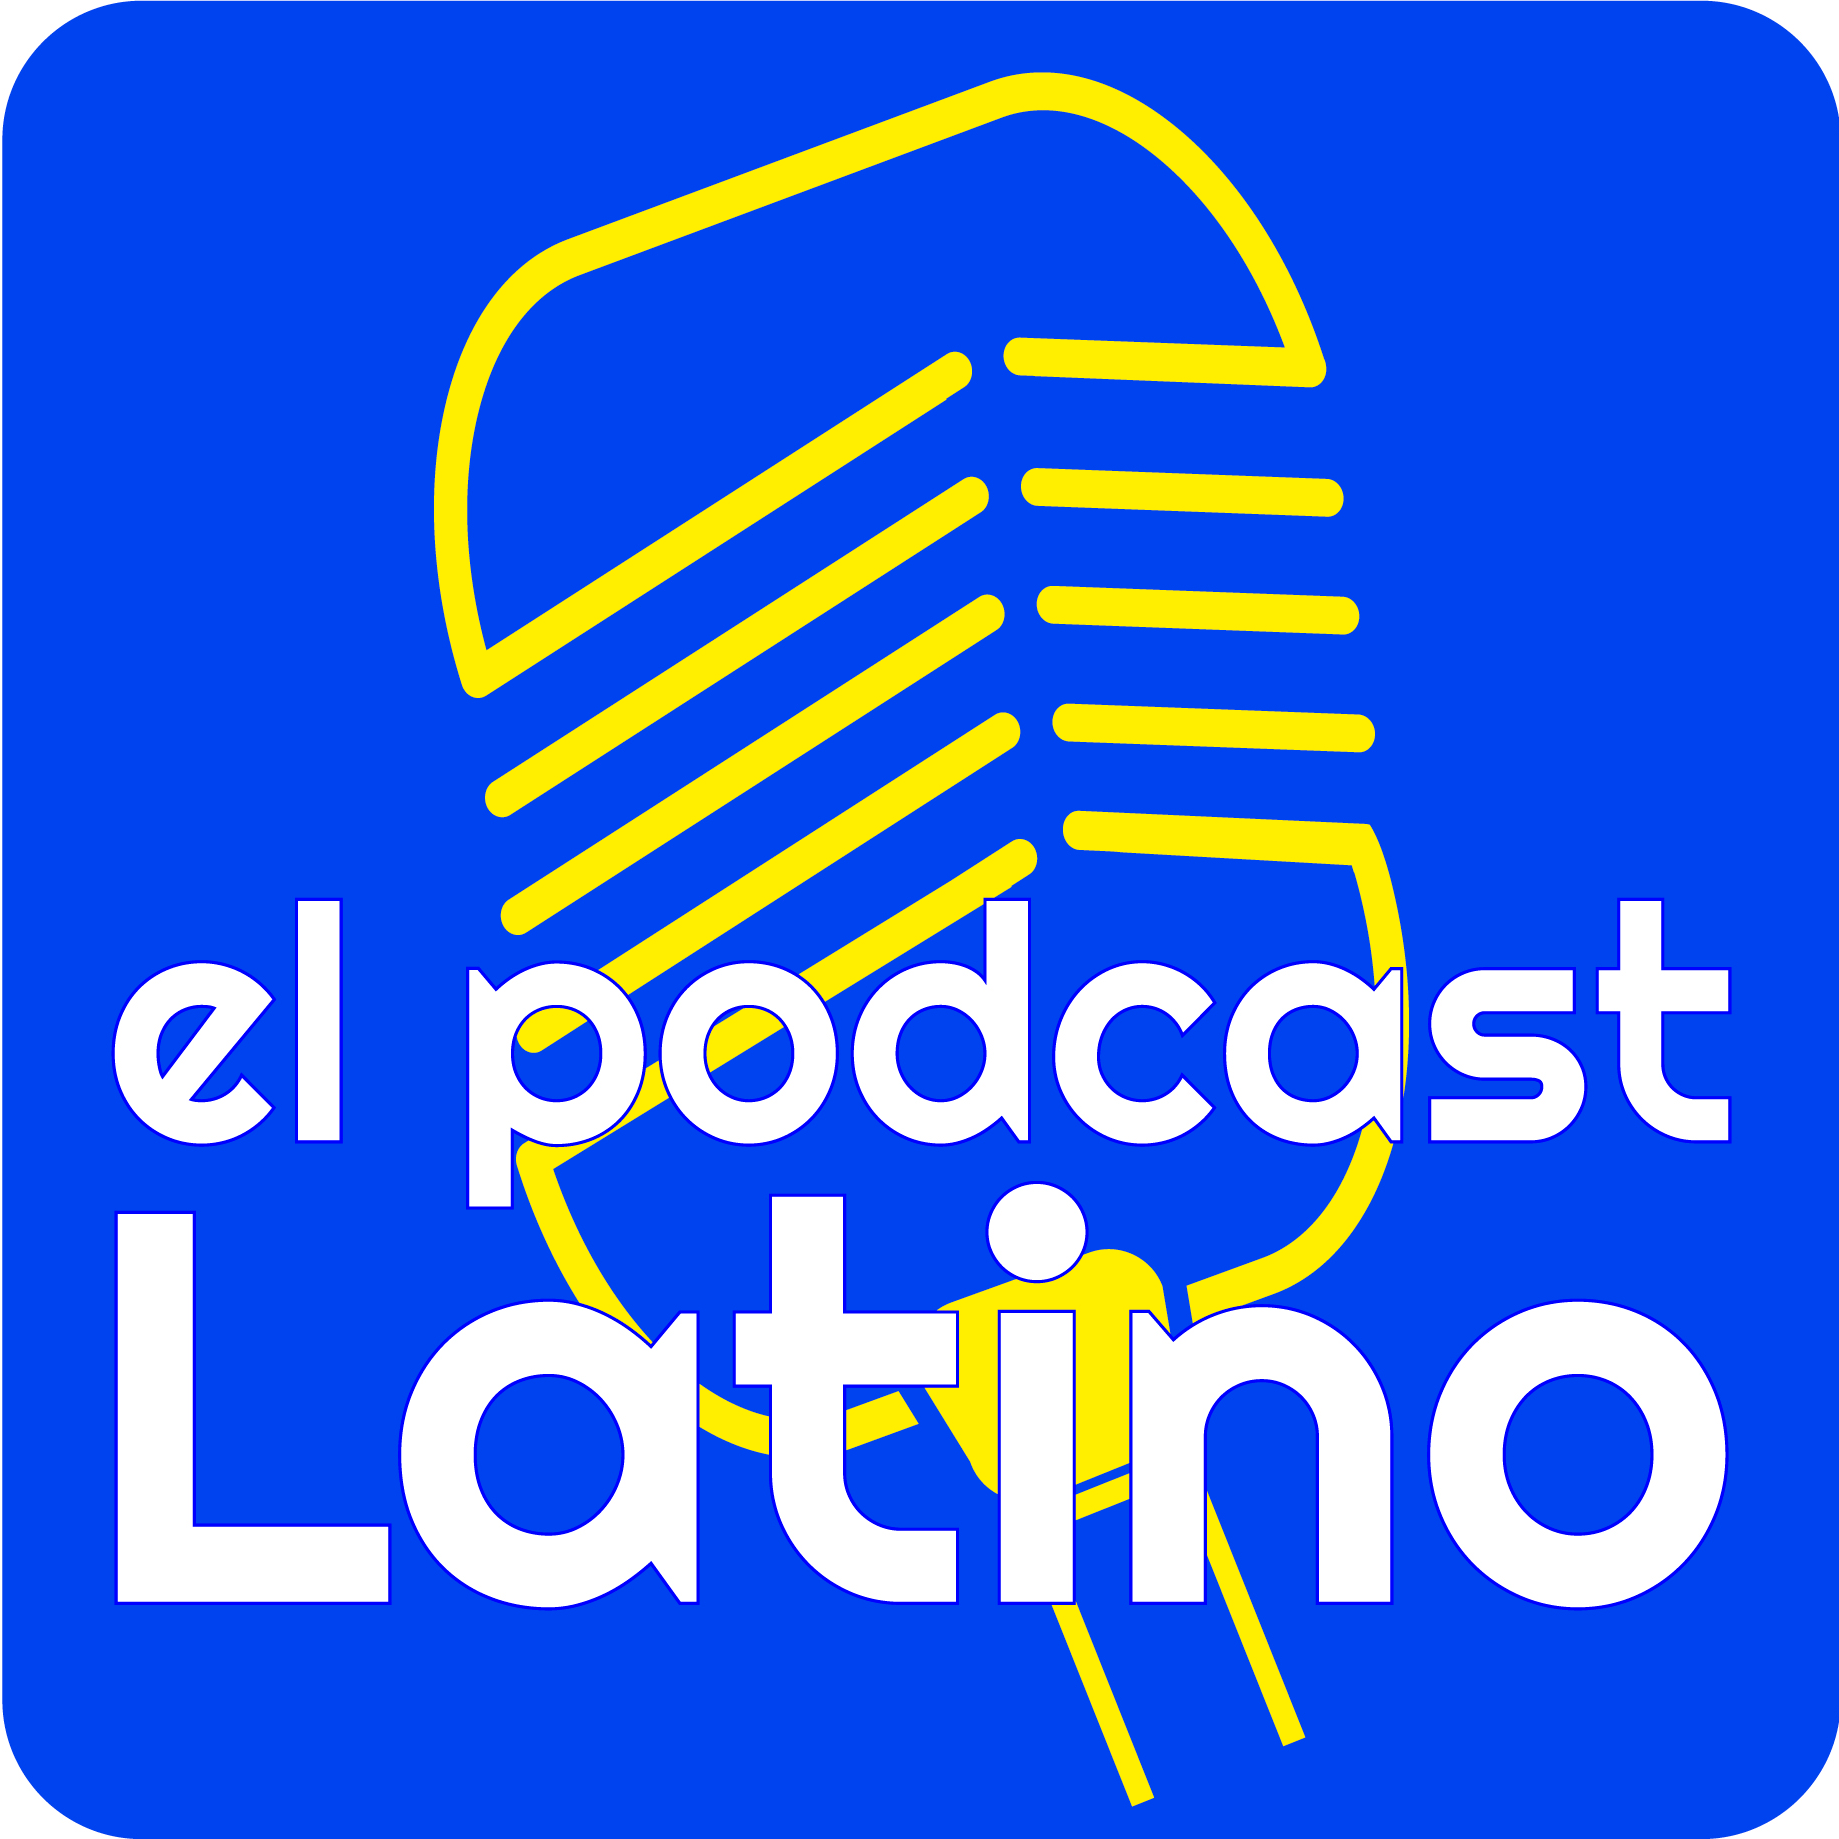 El Podcast Latino